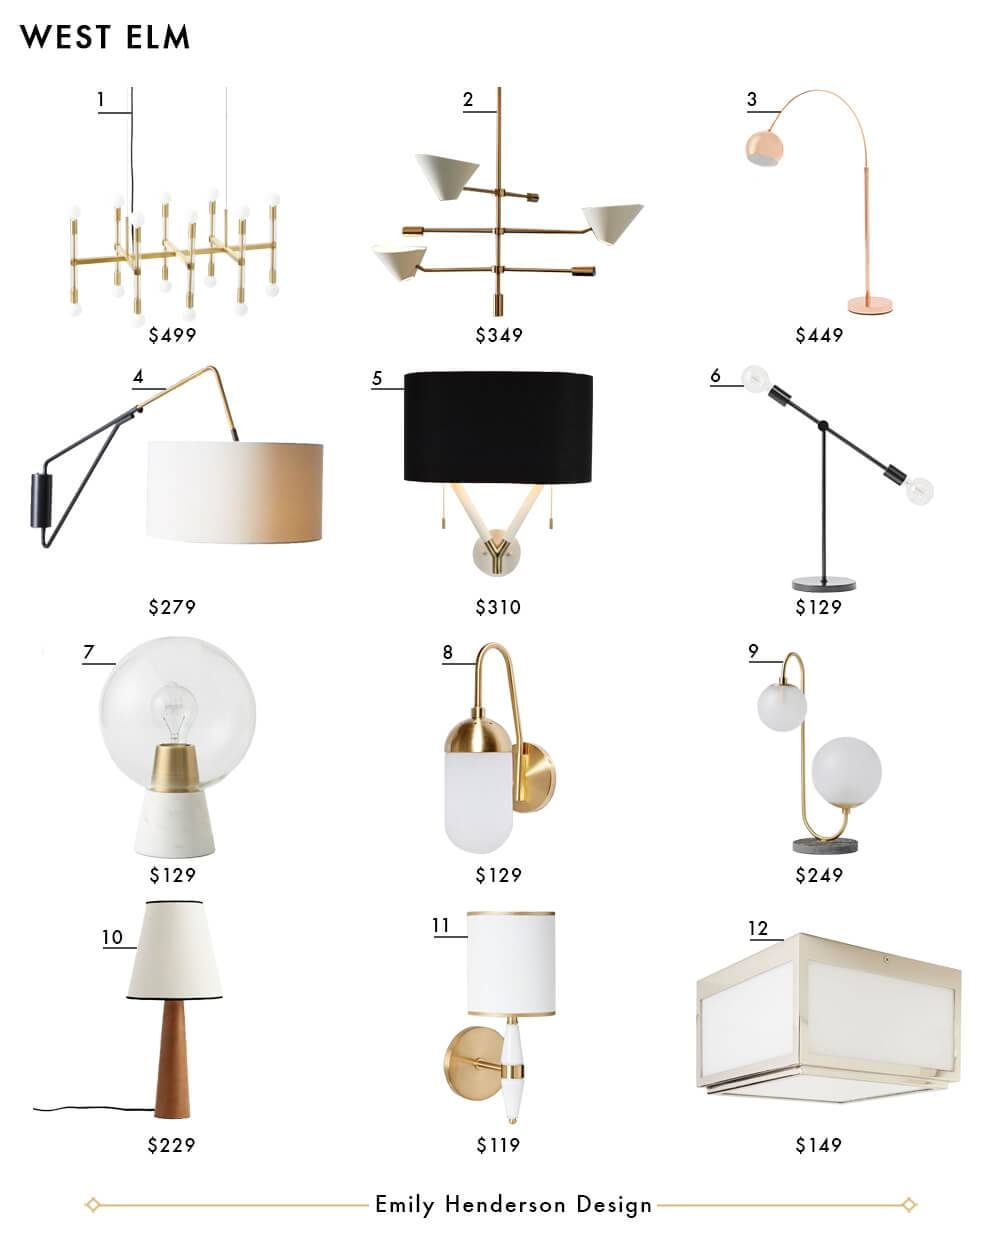 My Favorite 37 Online Lighting Resources - Emily Henderson inside West Elm Bathroom Pendant Lights (Image 14 of 15)